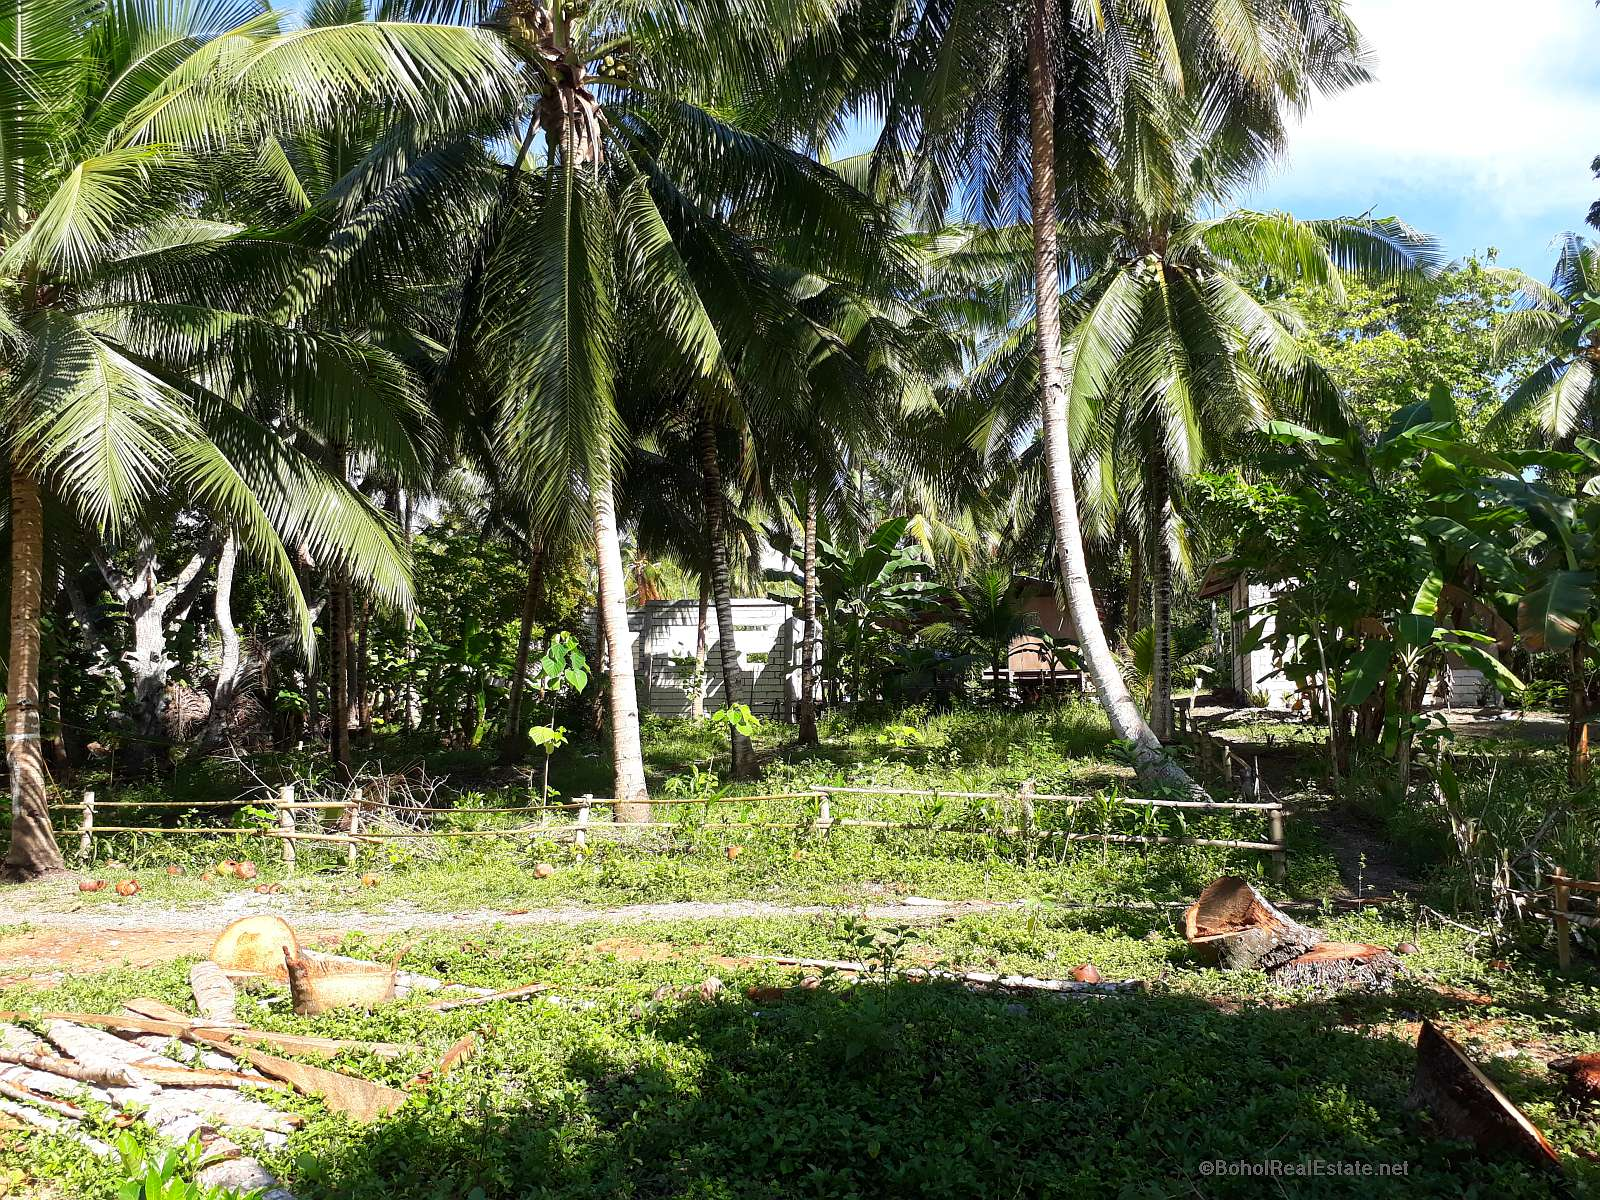 Language In 45 And 47 Stella Street: Lot For Sale In Catarman, Dauis, Panglao, Bohol « Bohol